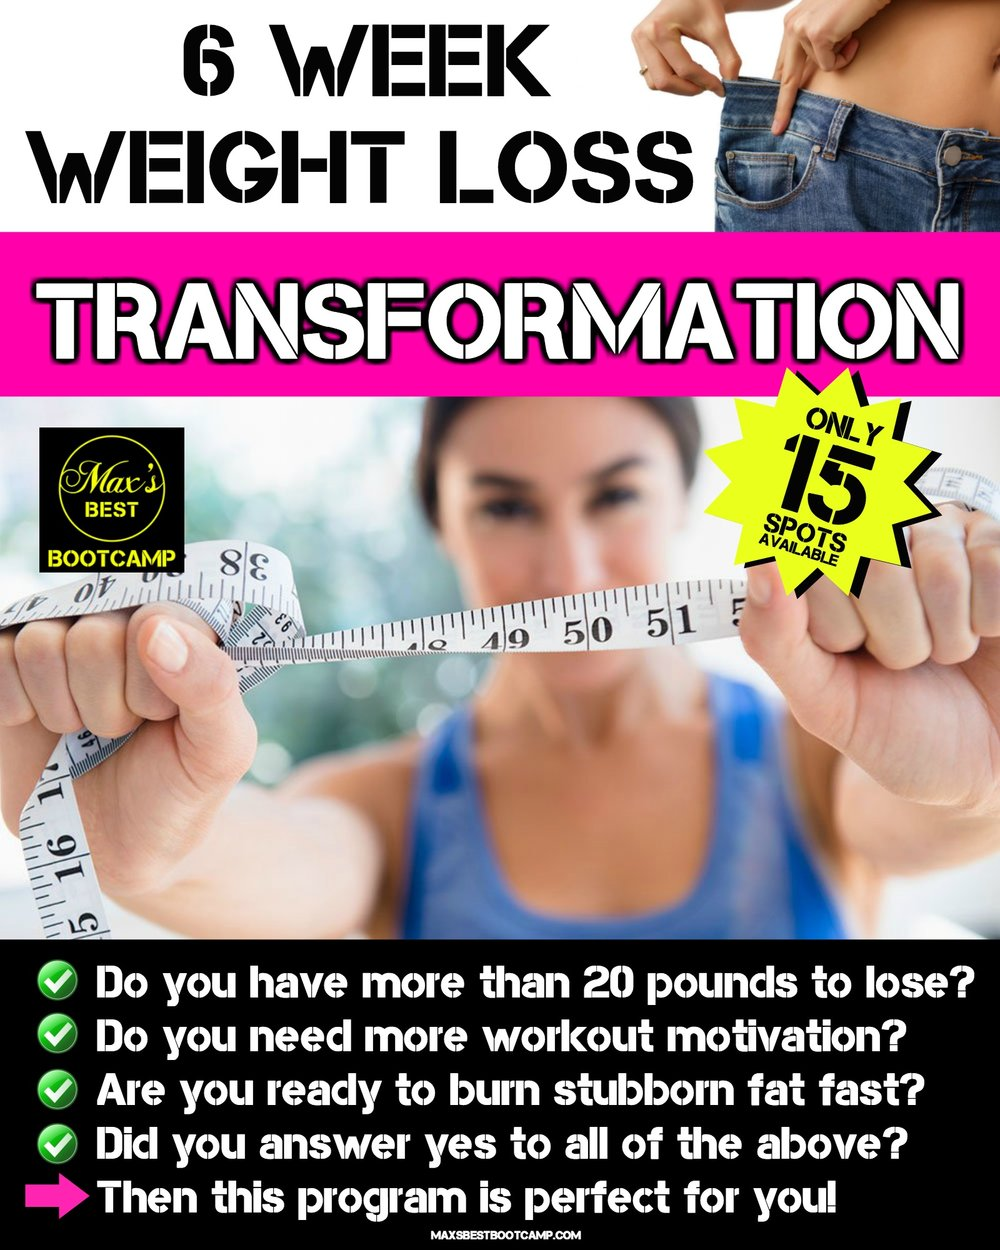 6 week weight loss transformation challenge page 1